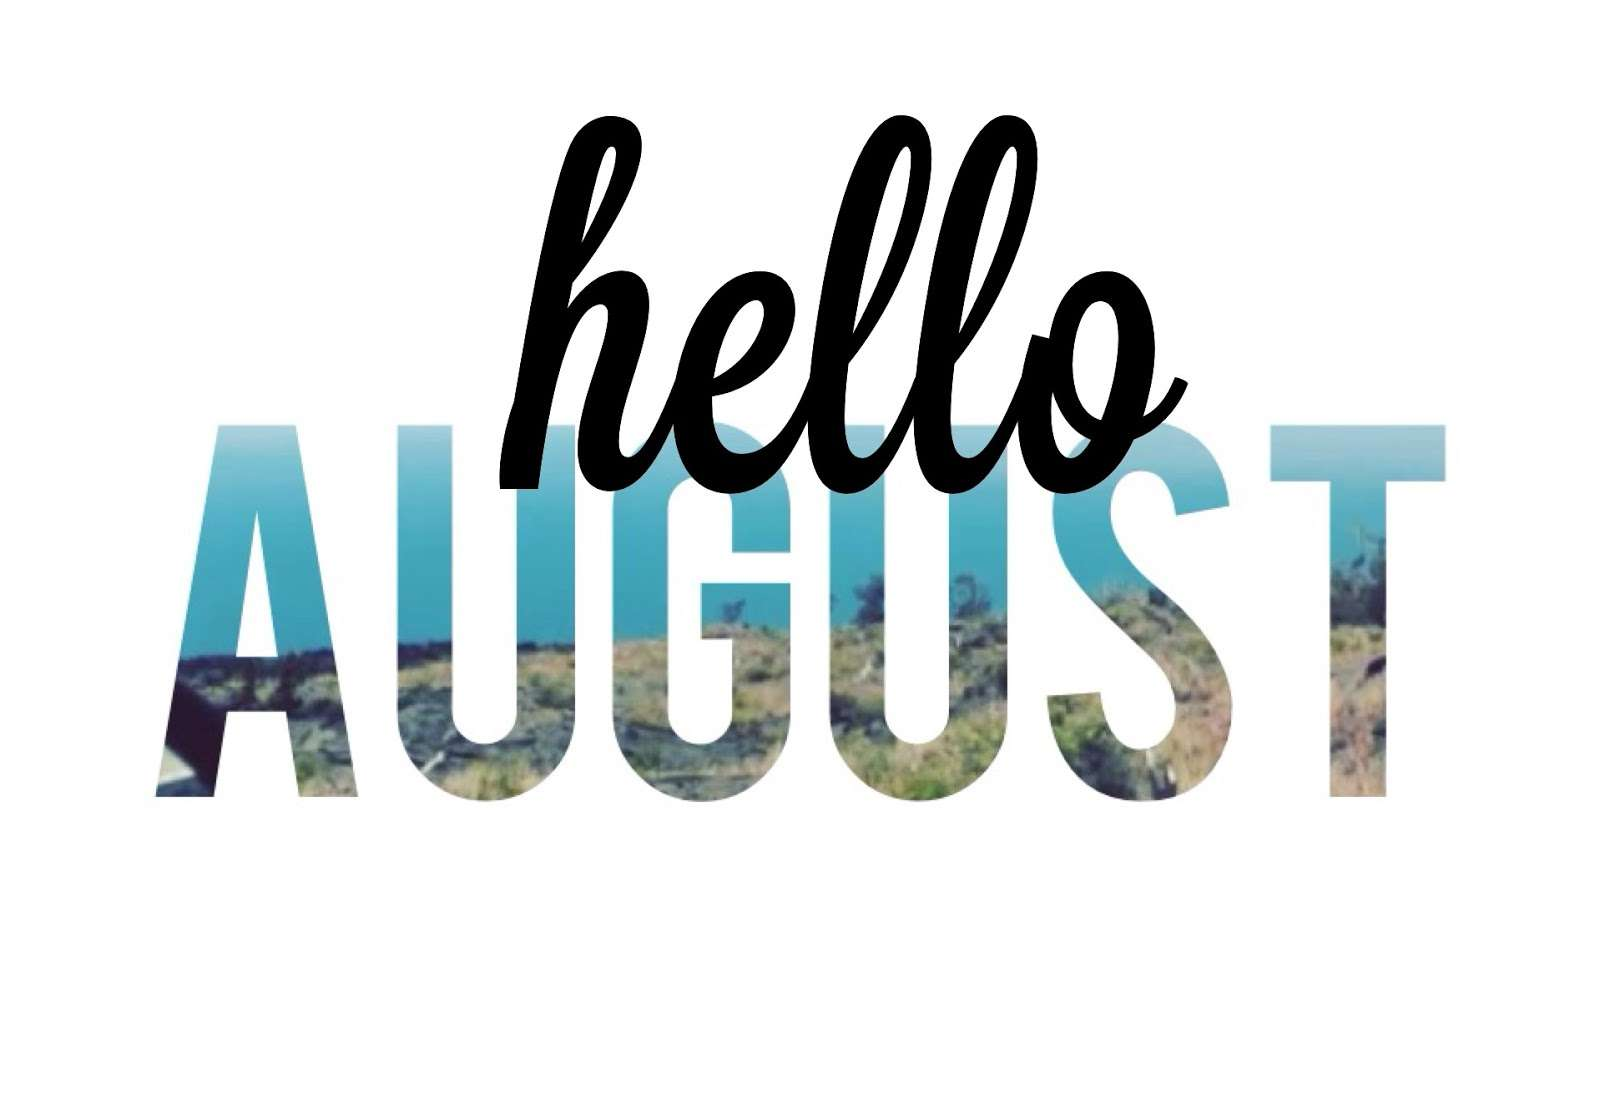 Saiprojects happy new month of august 2016 happy new month of august 2016 m4hsunfo